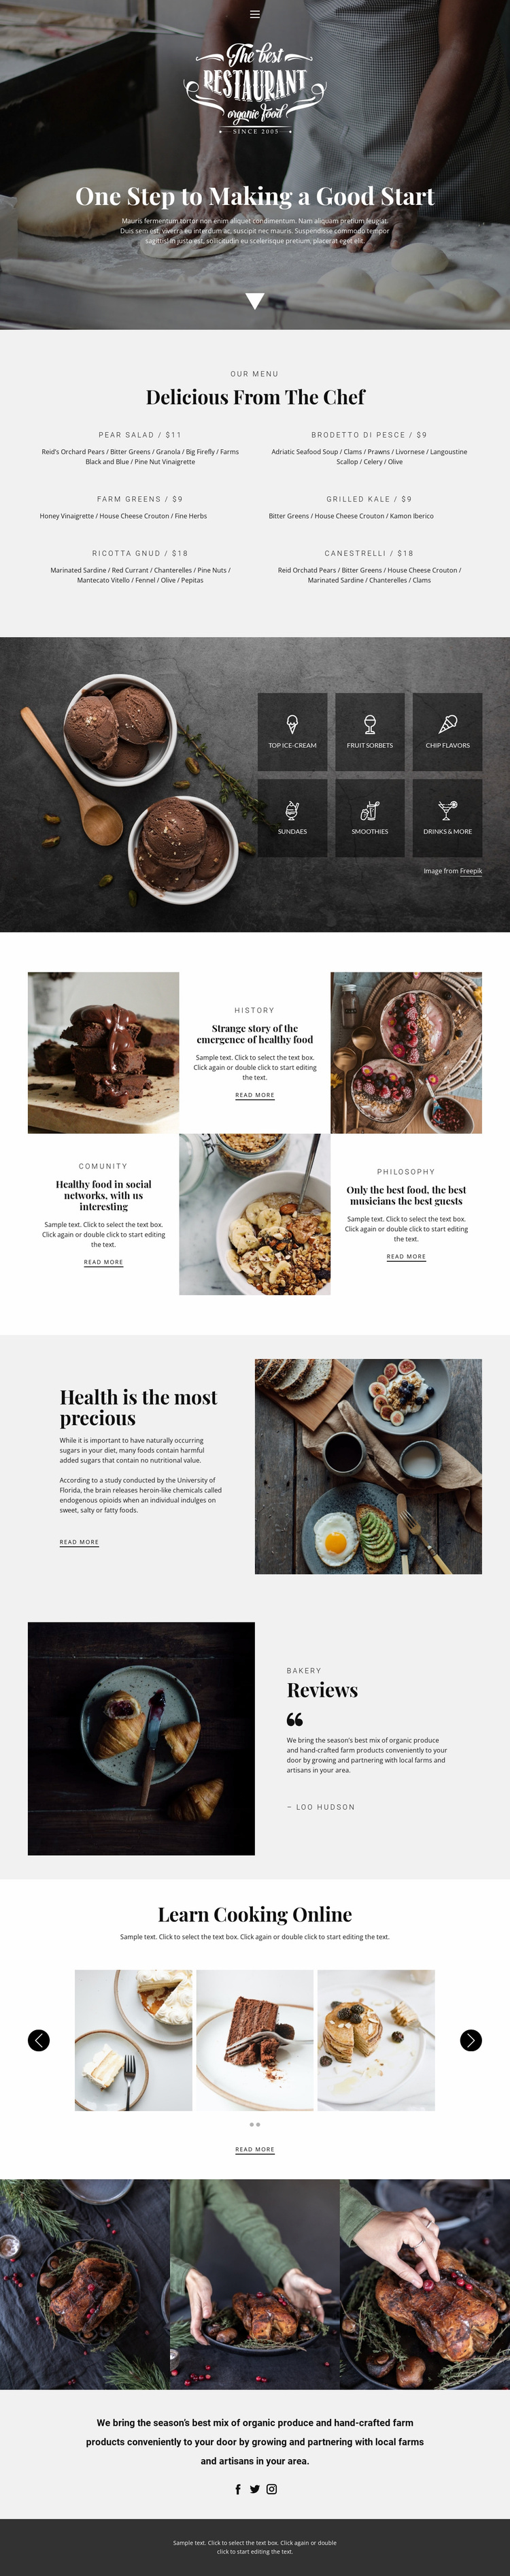 Recipes and cook lessons Website Design